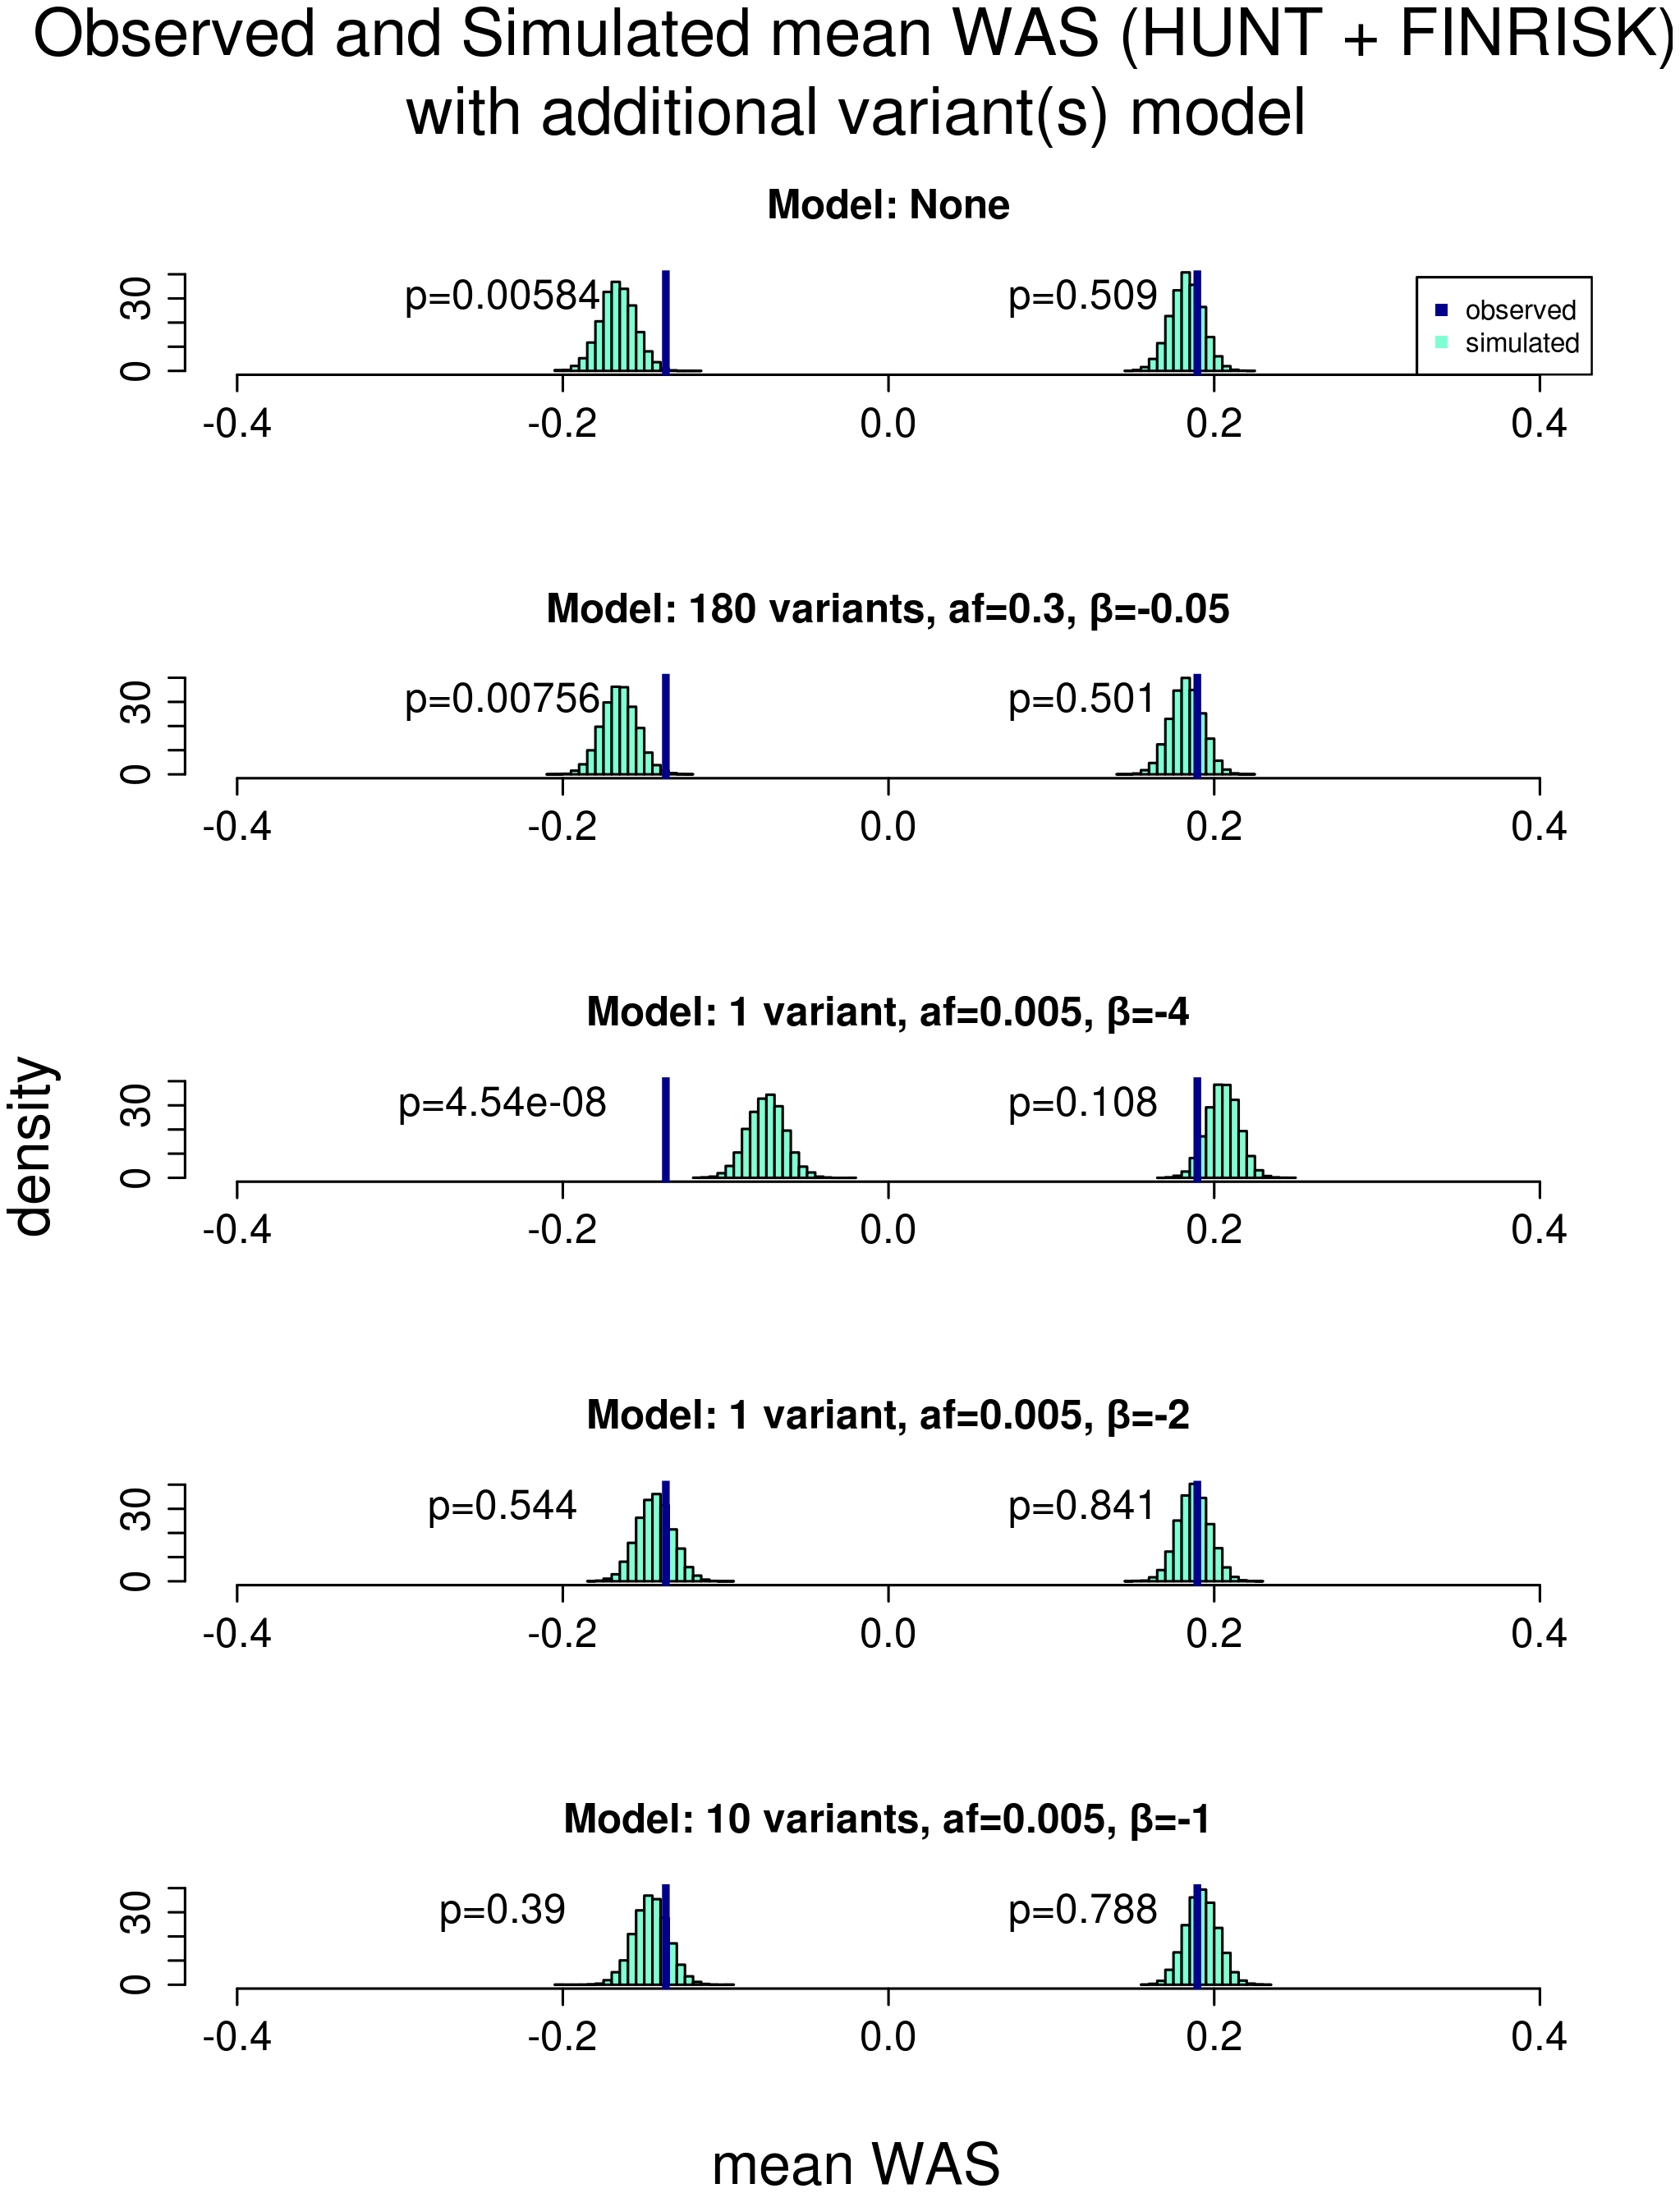 Comparison of the observed versus simulated mean <i>WAS</i> with models incorporating additional variants.